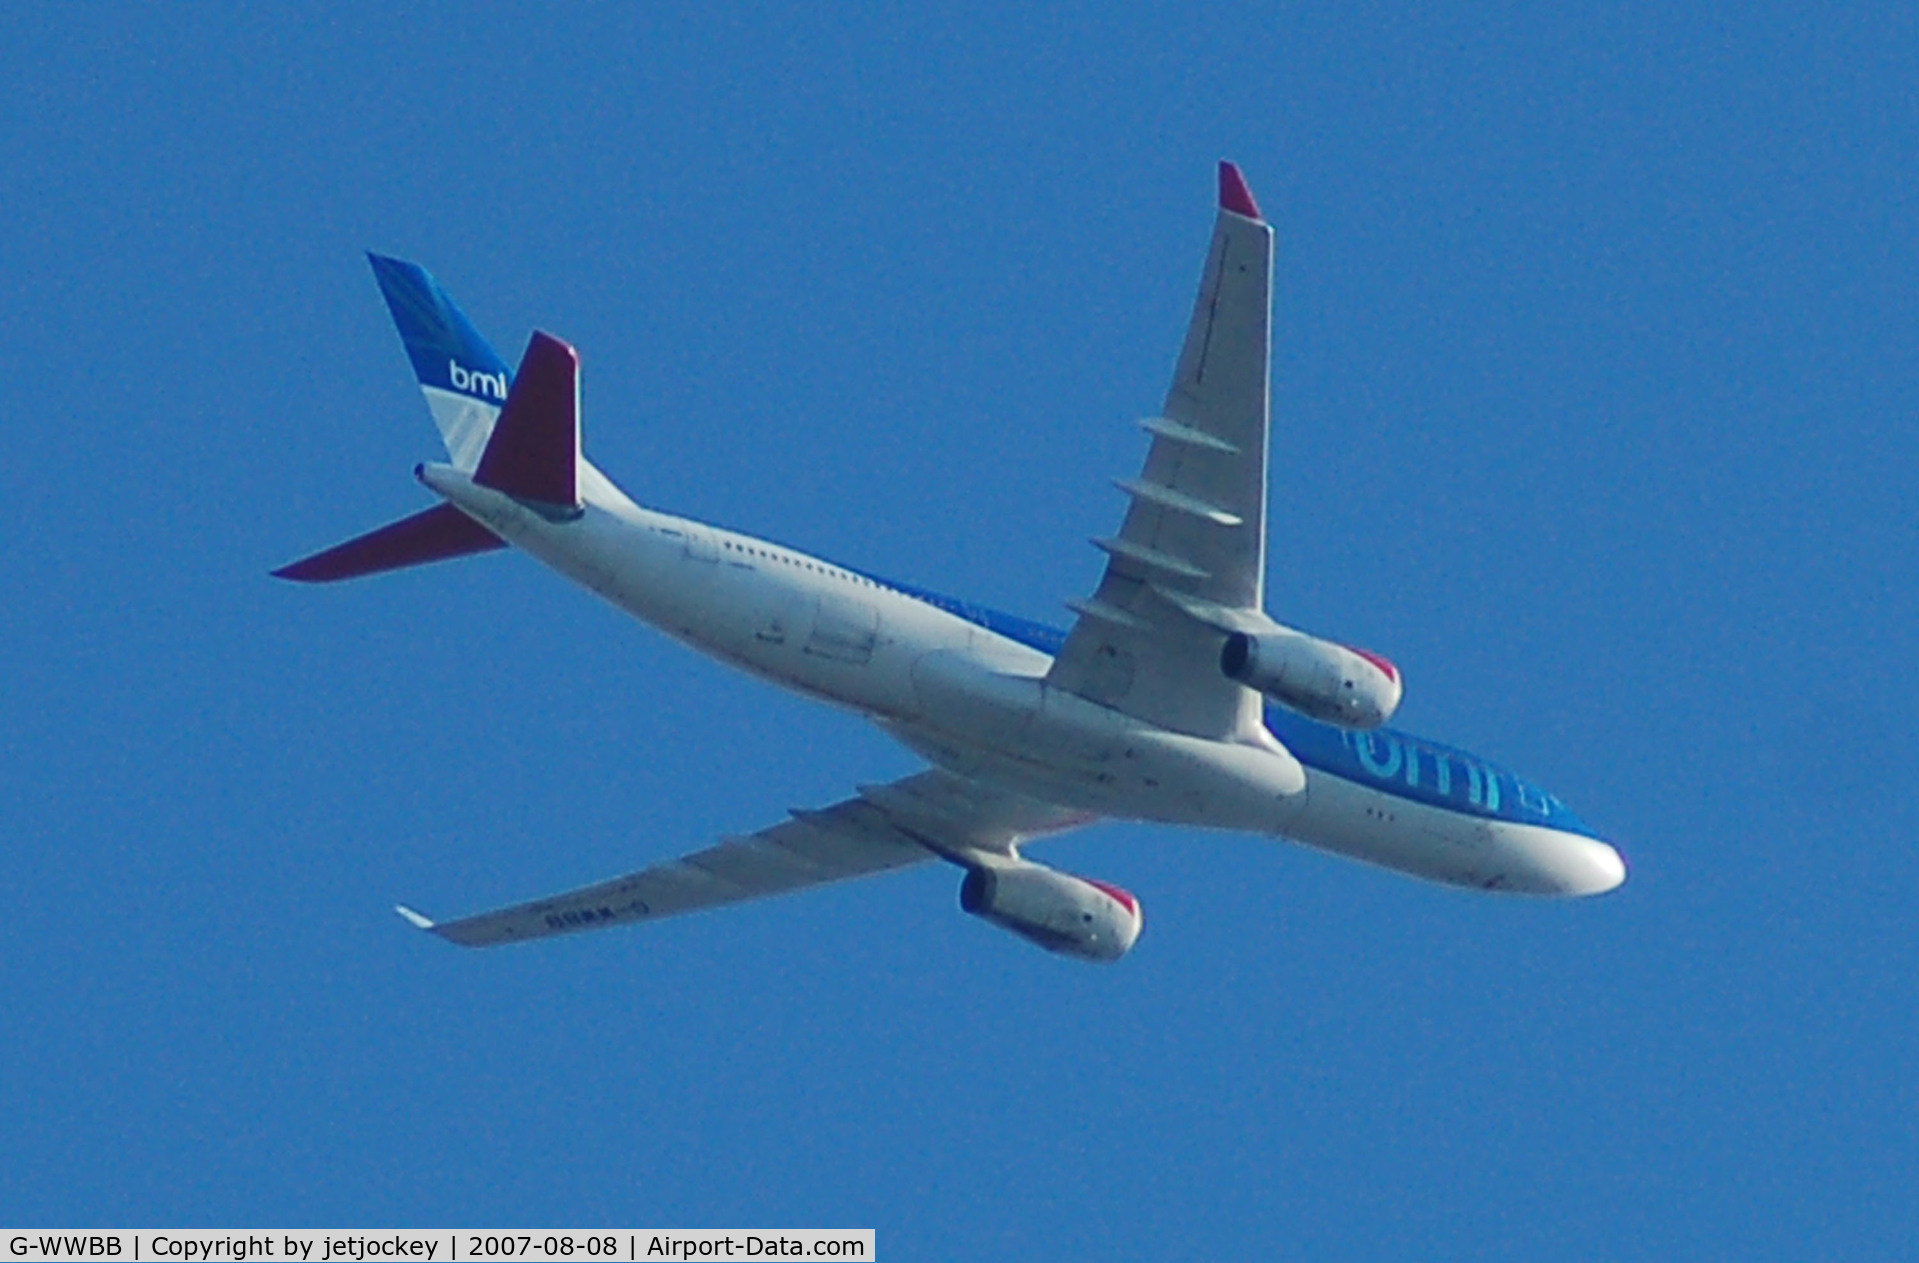 G-WWBB, 2001 Airbus A330-243 C/N 404, Passing over the house